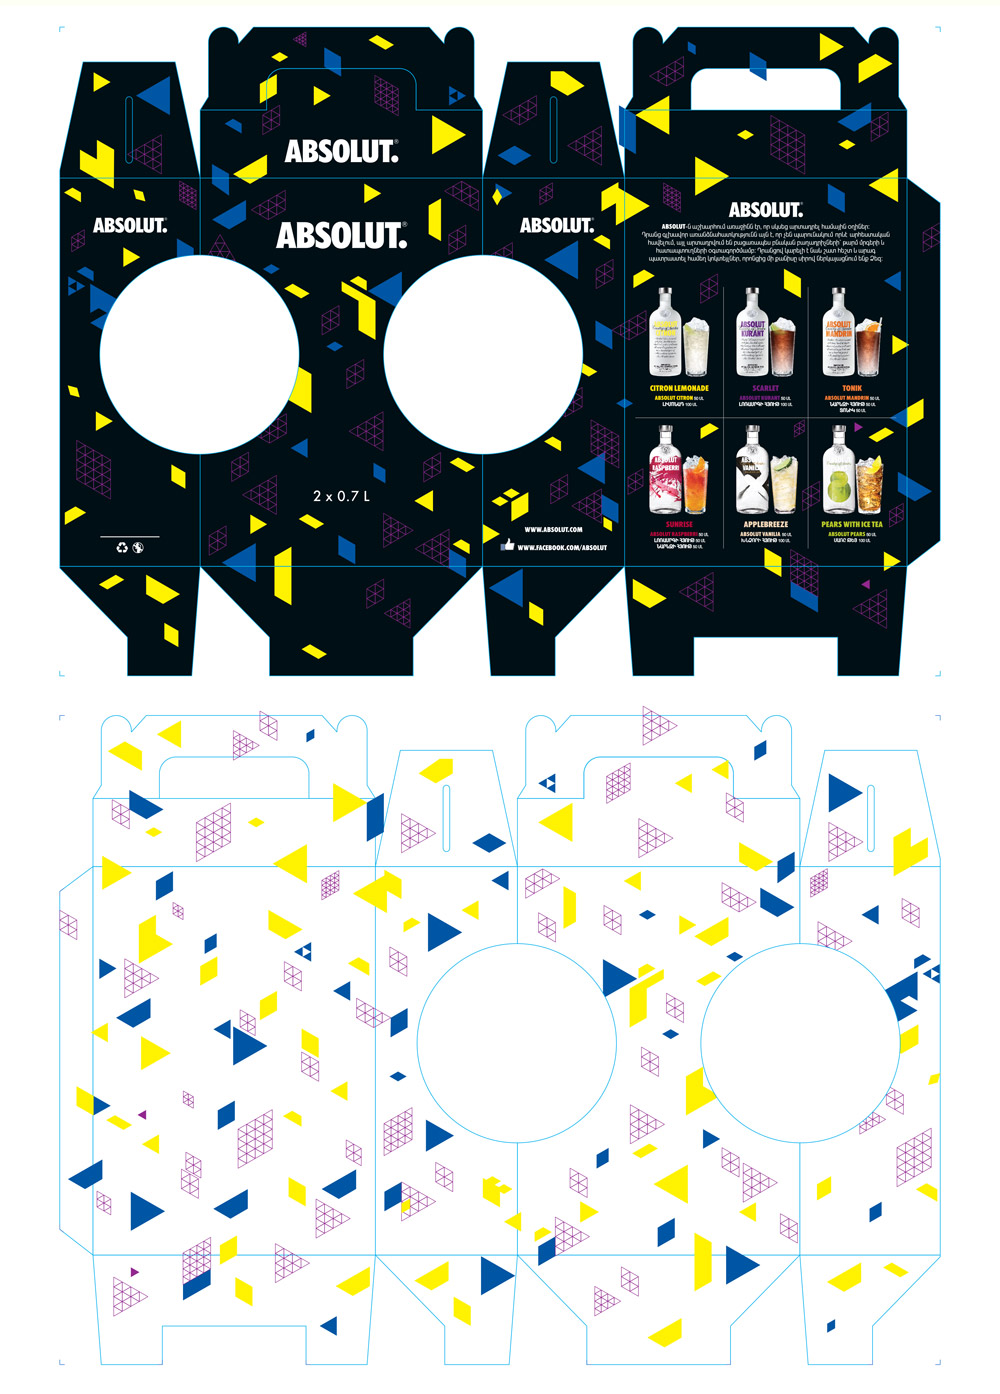 ABSOLUT Twen pack 2016_3